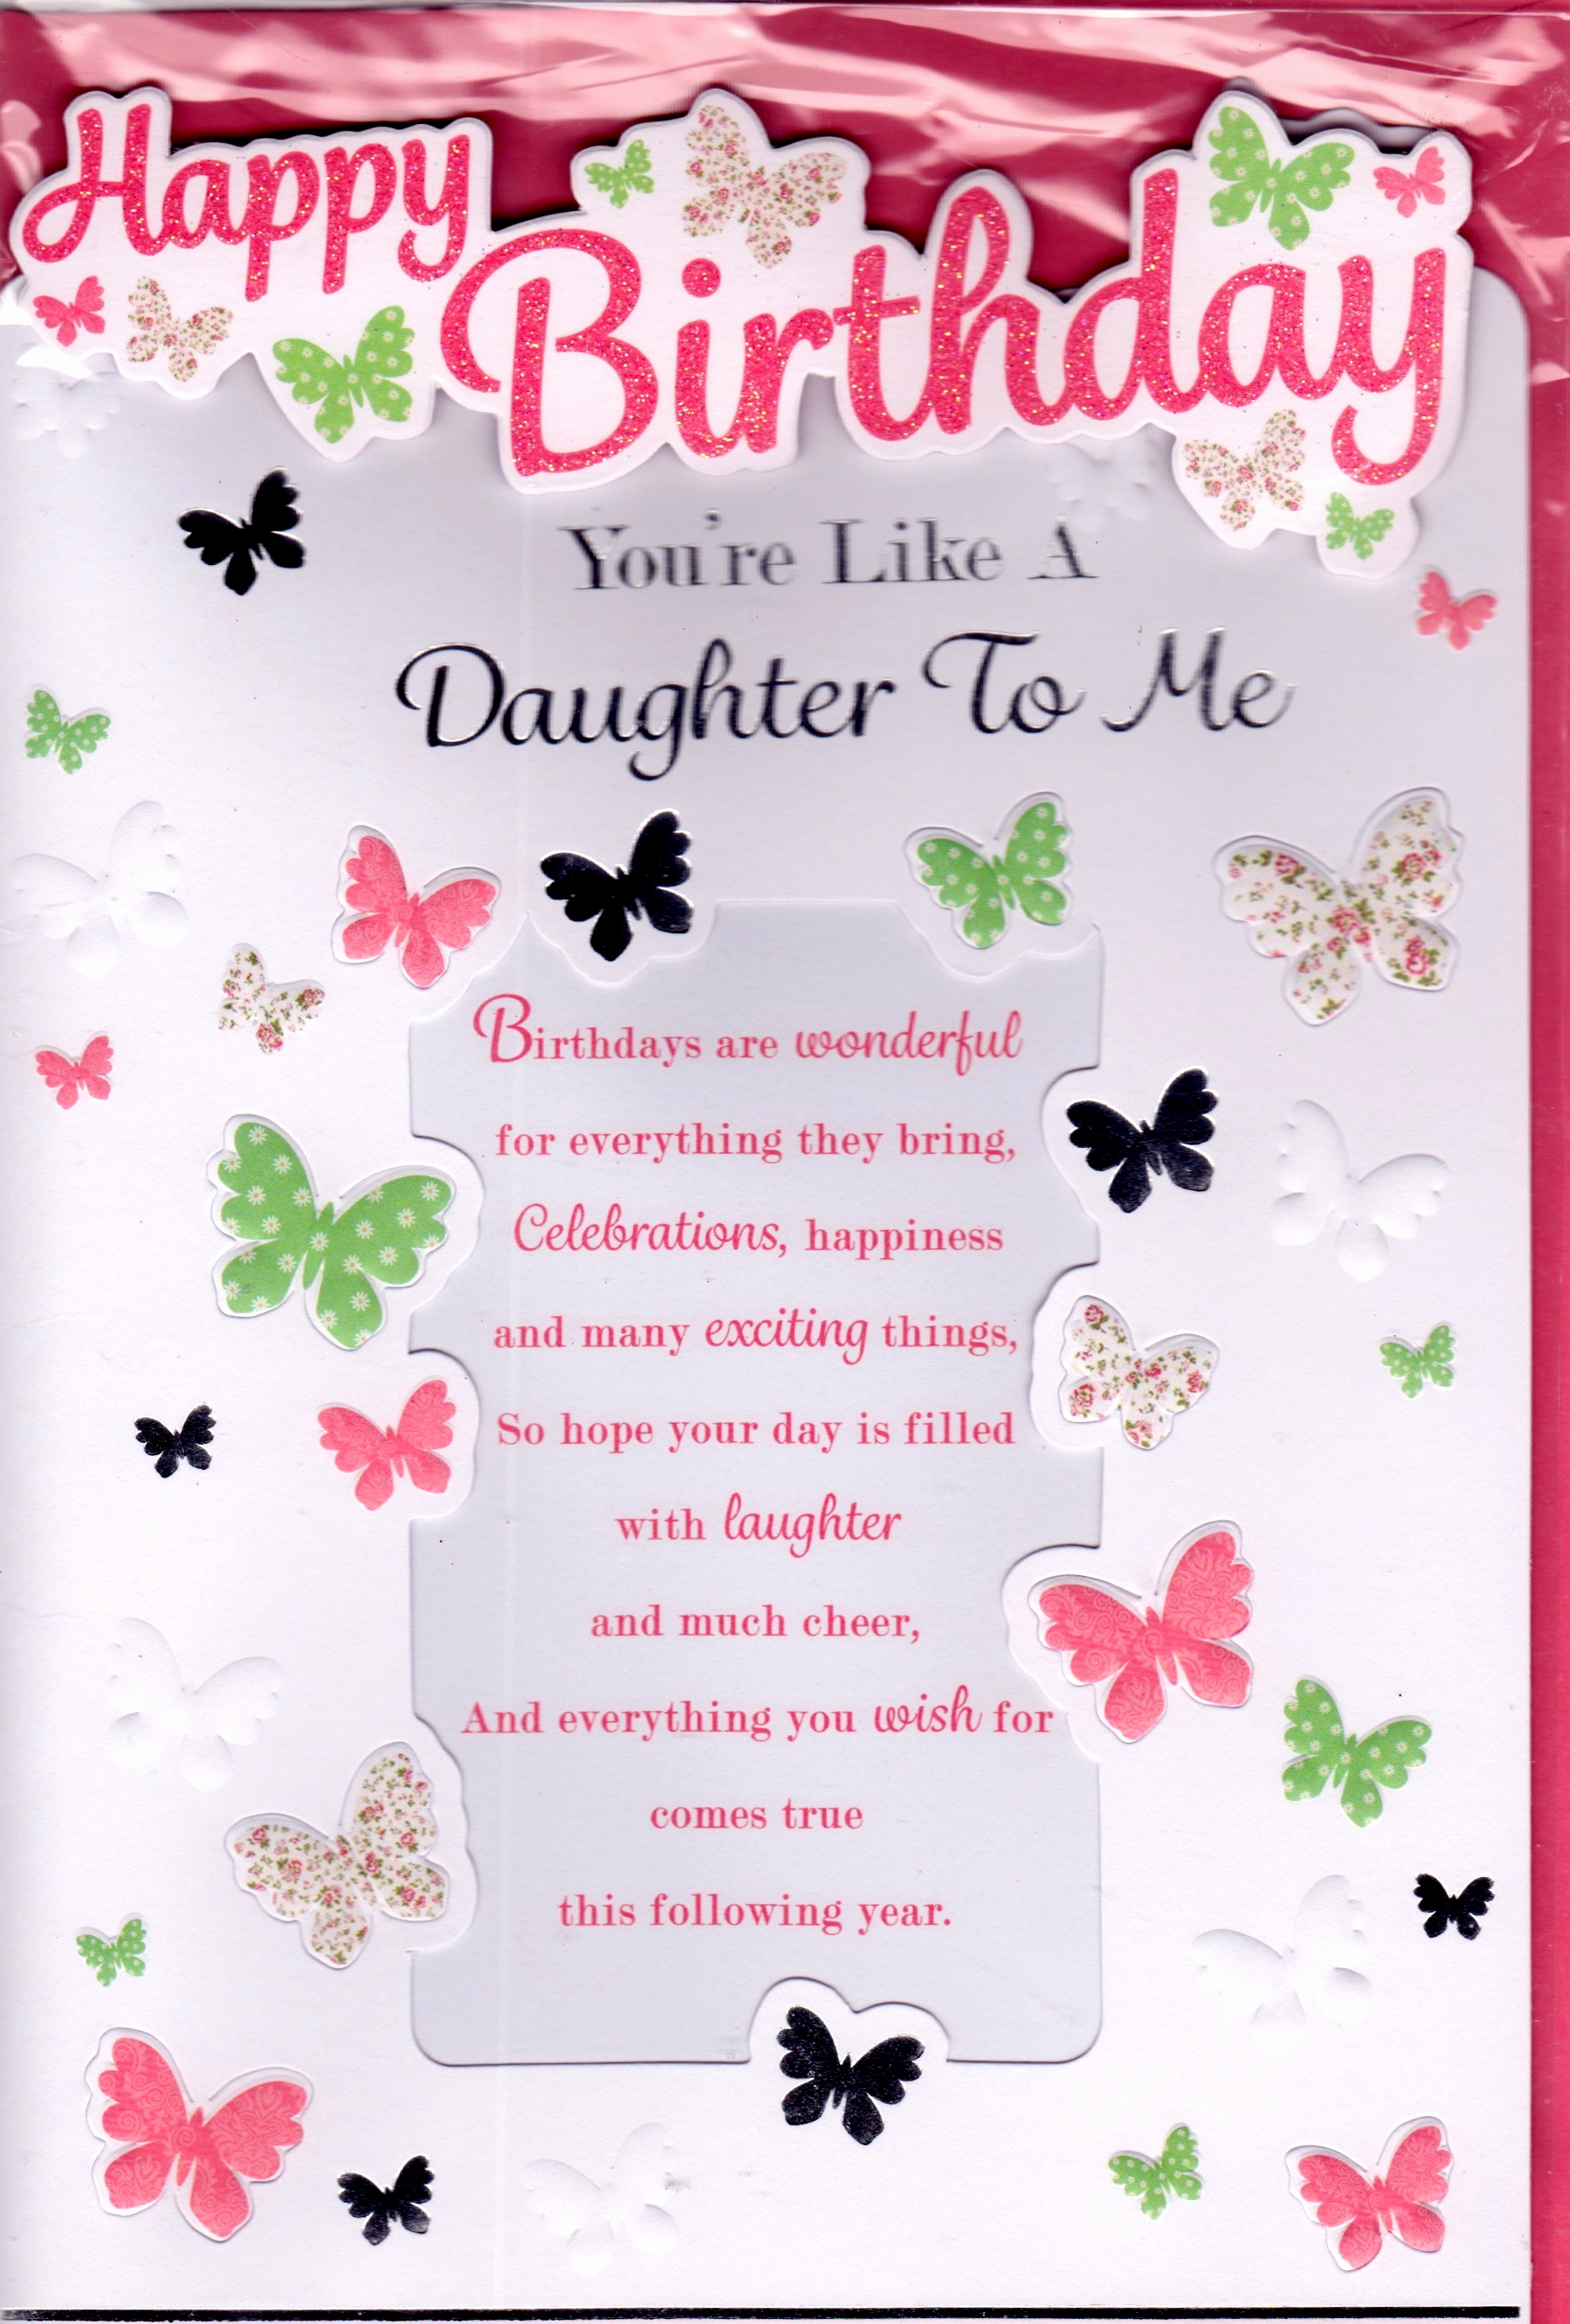 21st birthday card messages for daughter ; 21st-birthday-card-messages-luxury-template-21st-birthday-cards-for-a-daughter-plus-birthday-cards-of-21st-birthday-card-messages